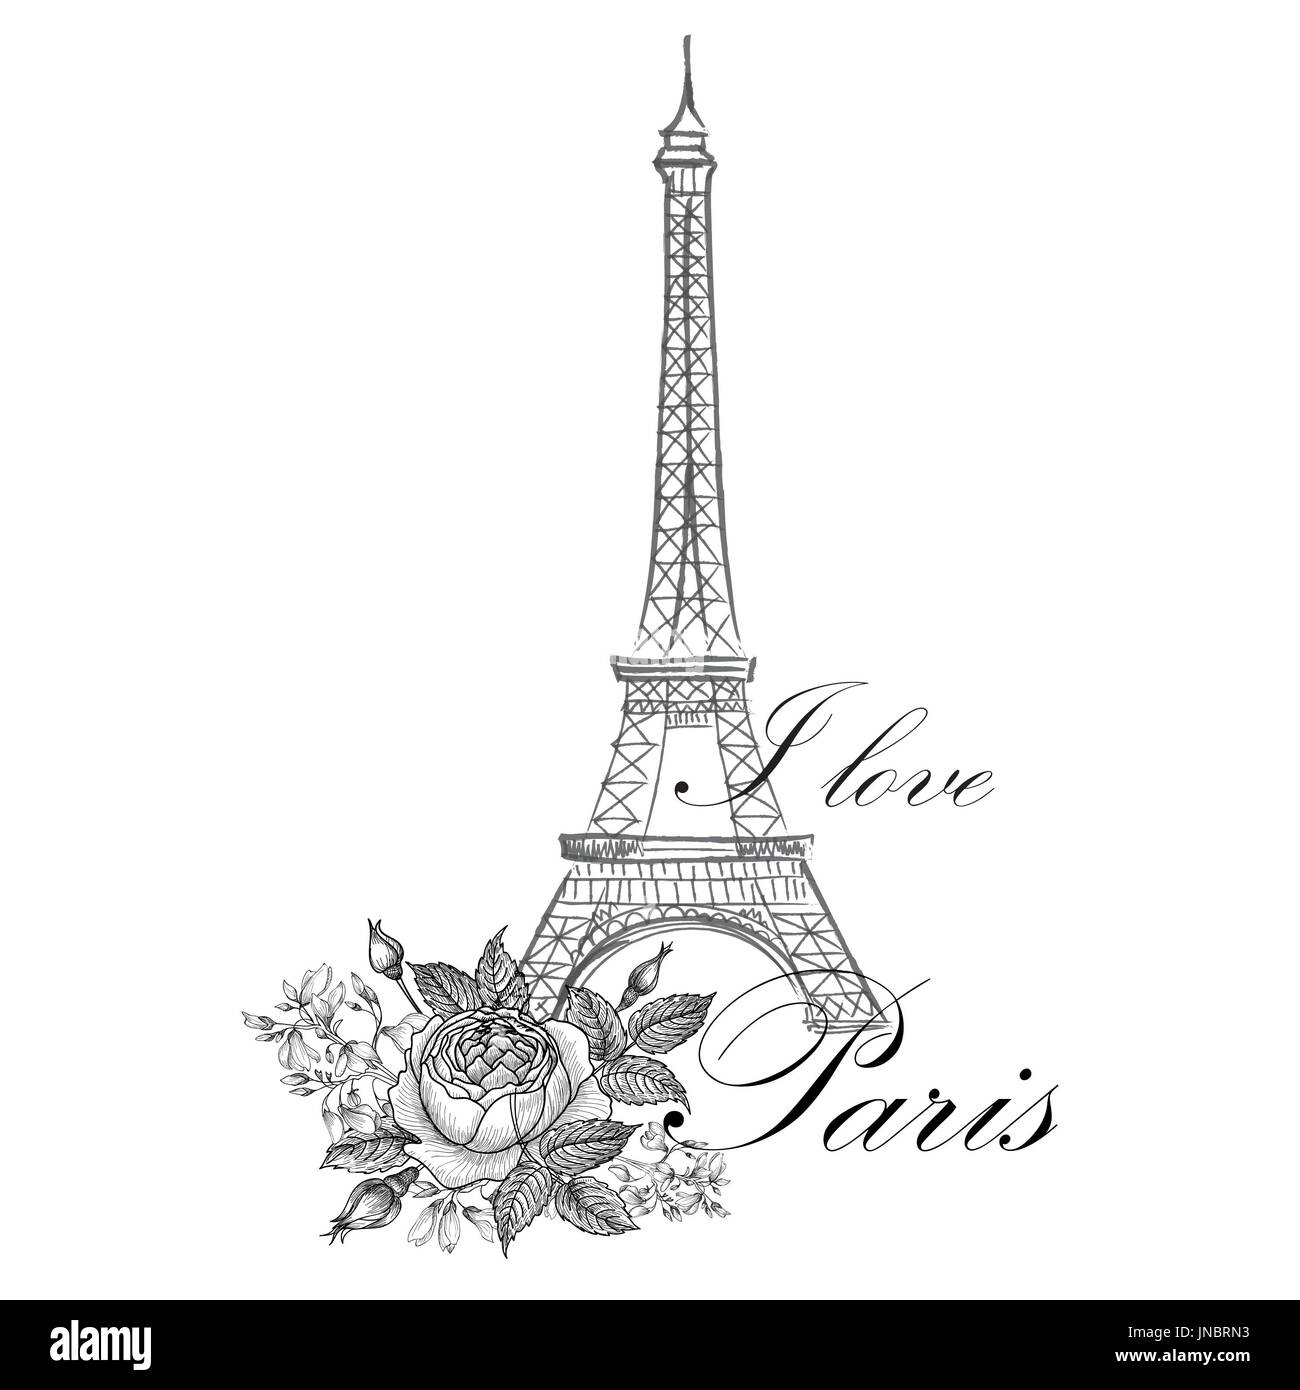 Paris sign. French famous landmark Eiffel tower. Travel France label. Paris architectural icon with lettering Stock Photo